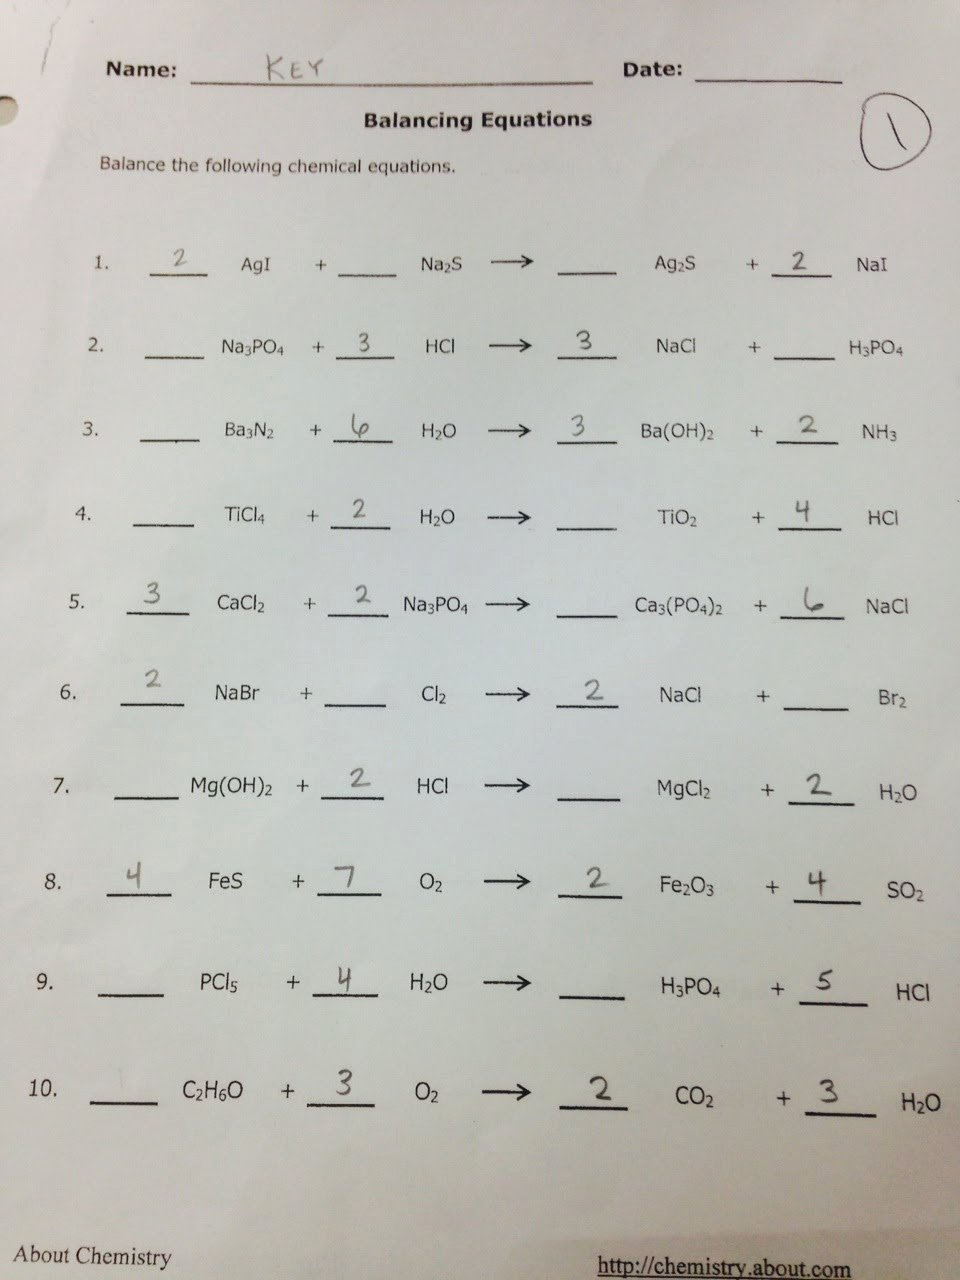 Balancing Act Worksheet Answer Key Beautiful Balancing Chemical Equations Worksheet Answers 110